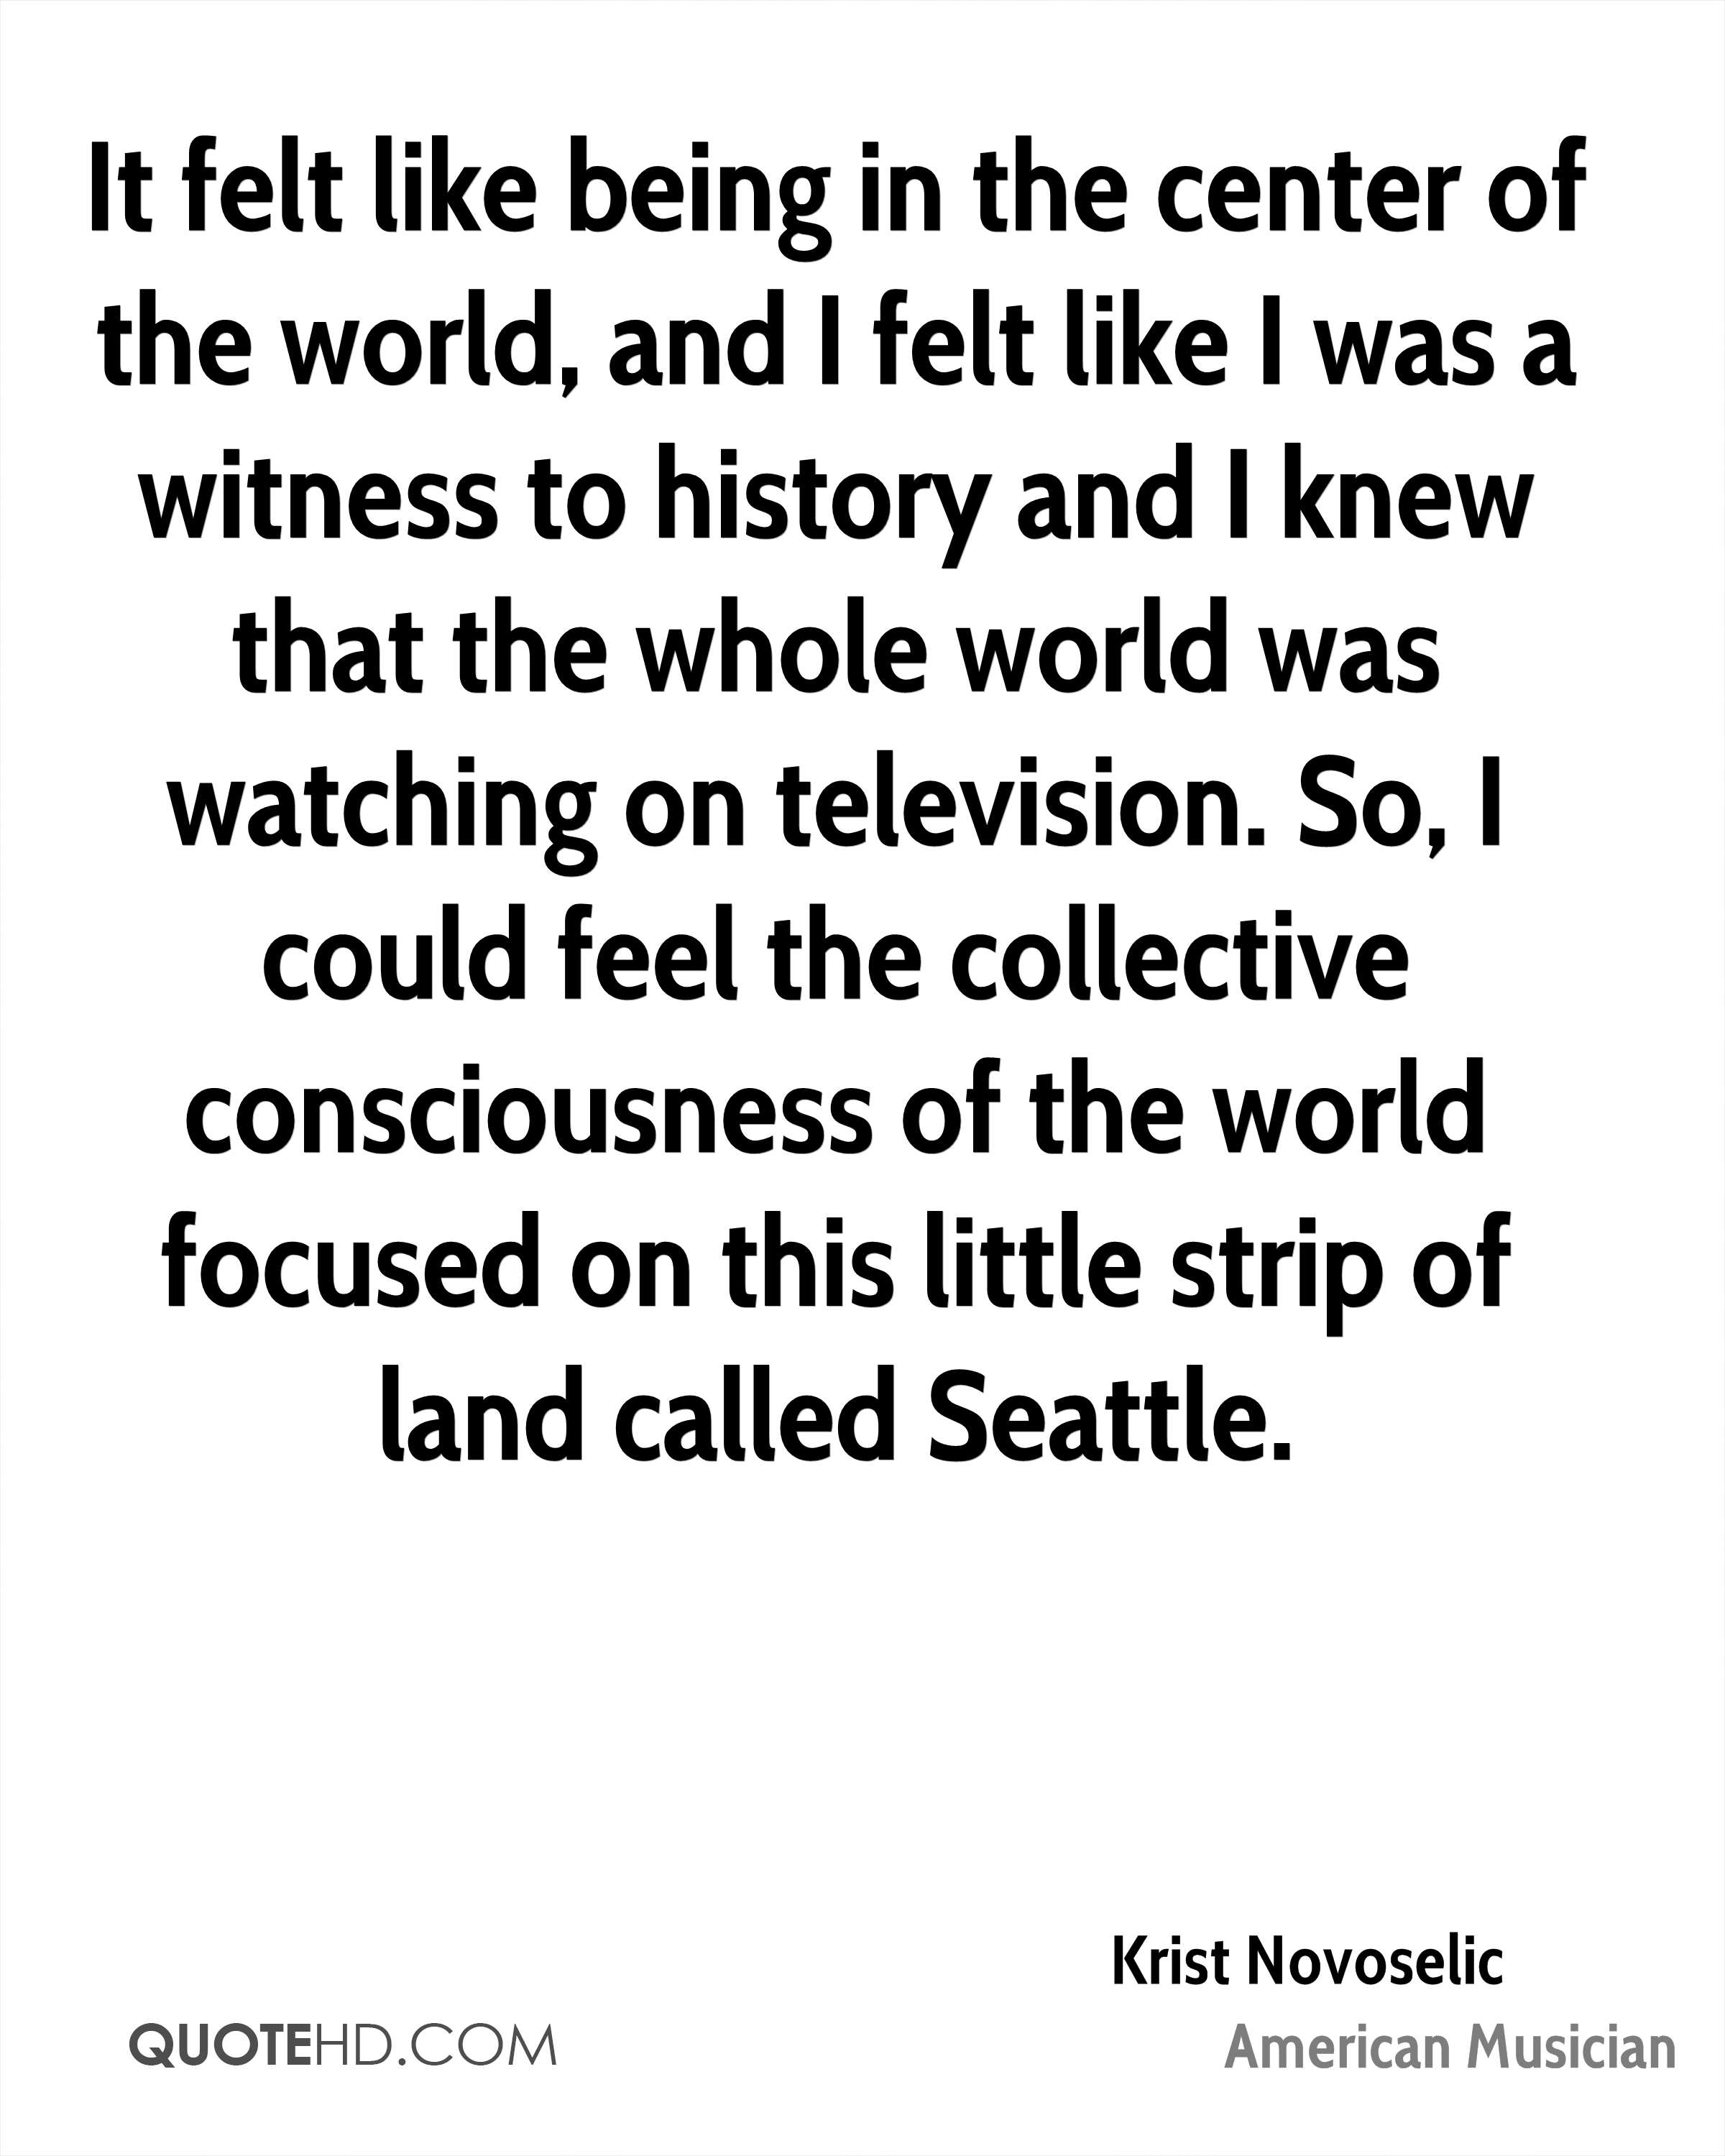 It felt like being in the center of the world, and I felt like I was a witness to history and I knew that the whole world was watching on television. So, I could feel the collective consciousness of the world focused on this little strip of land called Seattle.